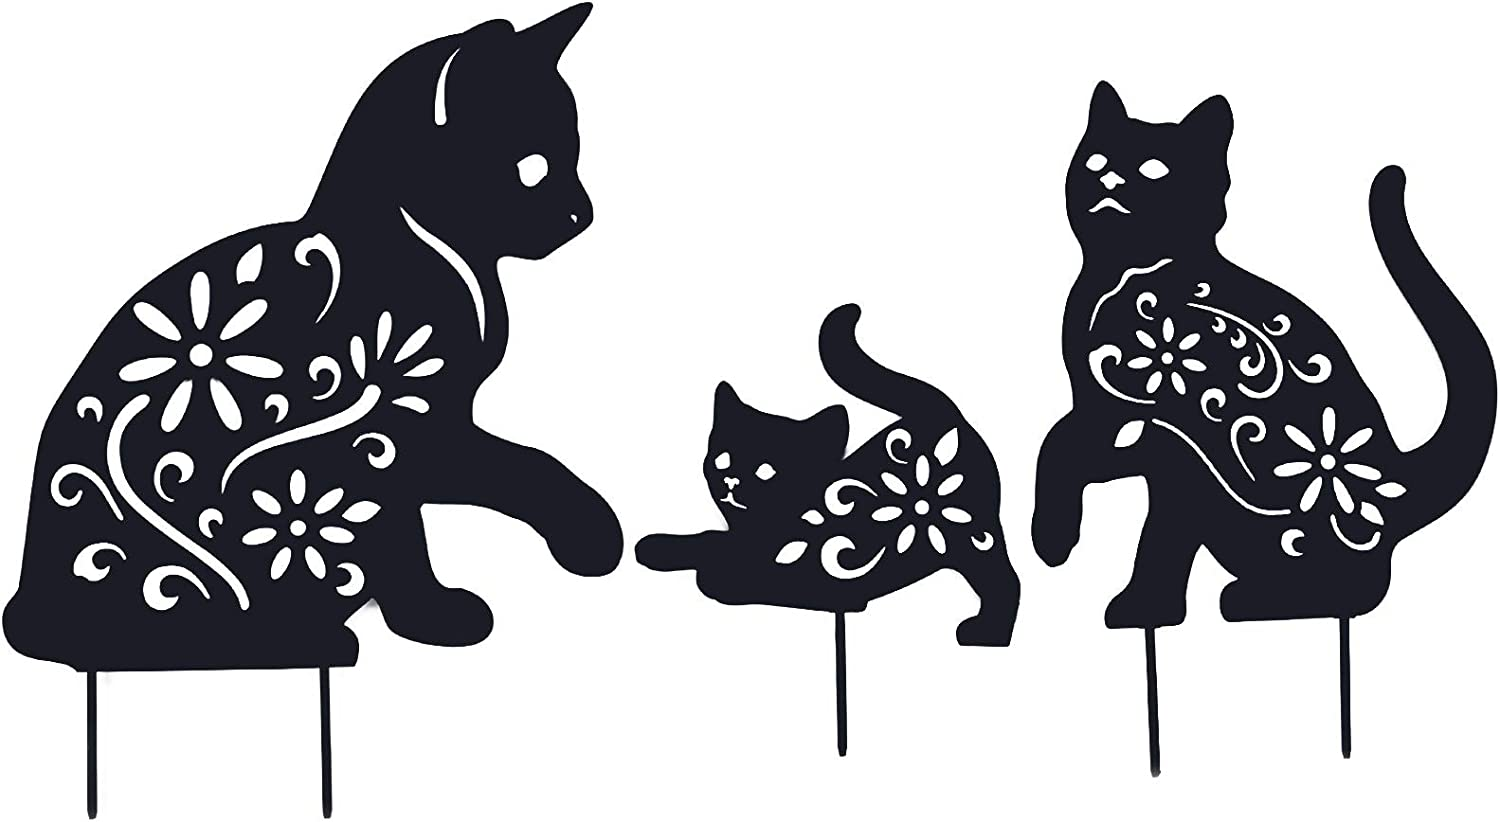 hogardeck Cat Garden Metal Stakes - 3 Pack Black Cat Silhouette Stake for Yard, Garden Decor, Animal Lawn Patio Outdoor Decorations, Gifts for Cat Lovers